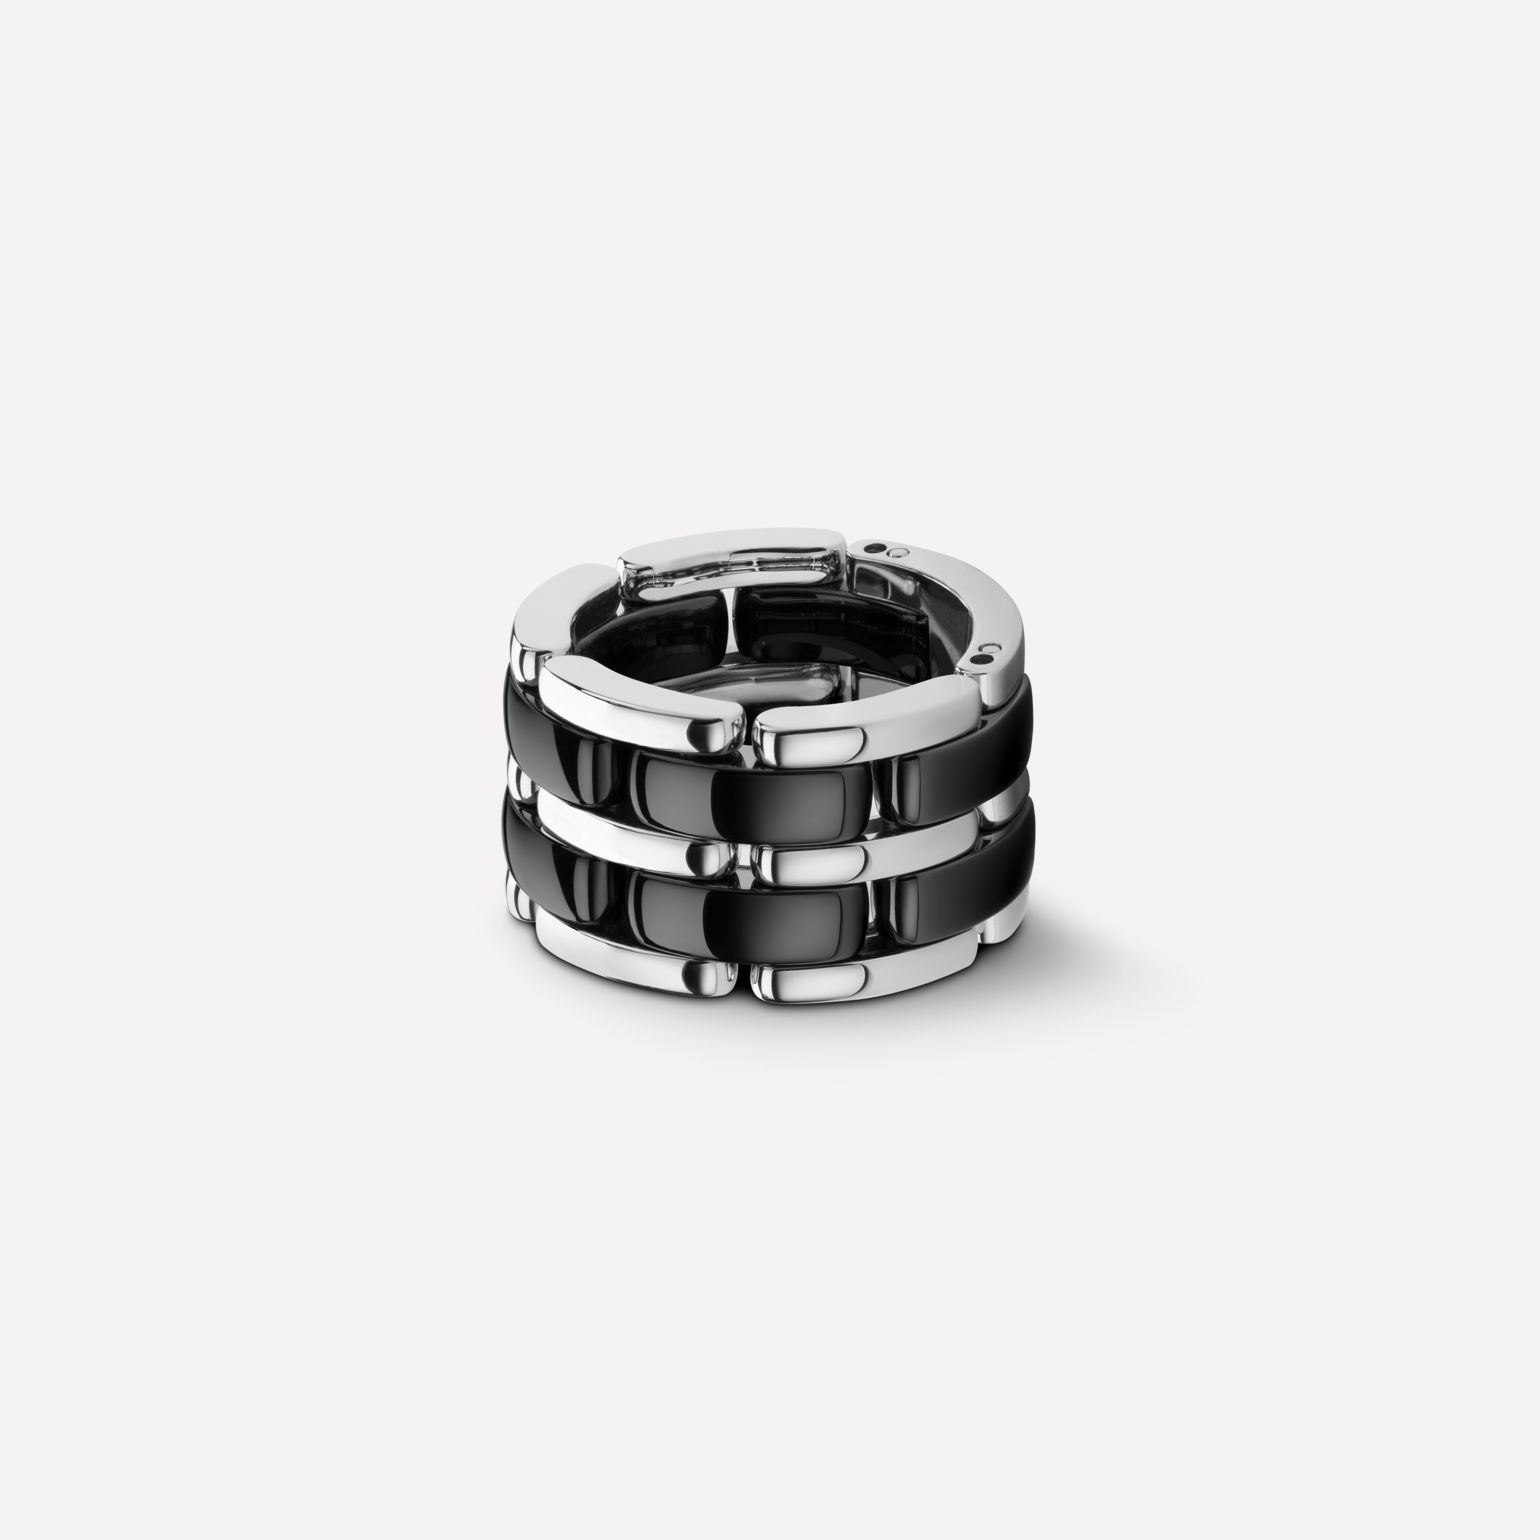 Ultra Ring Ultra ring in black ceramic and 18K white gold. Large, flexible version.